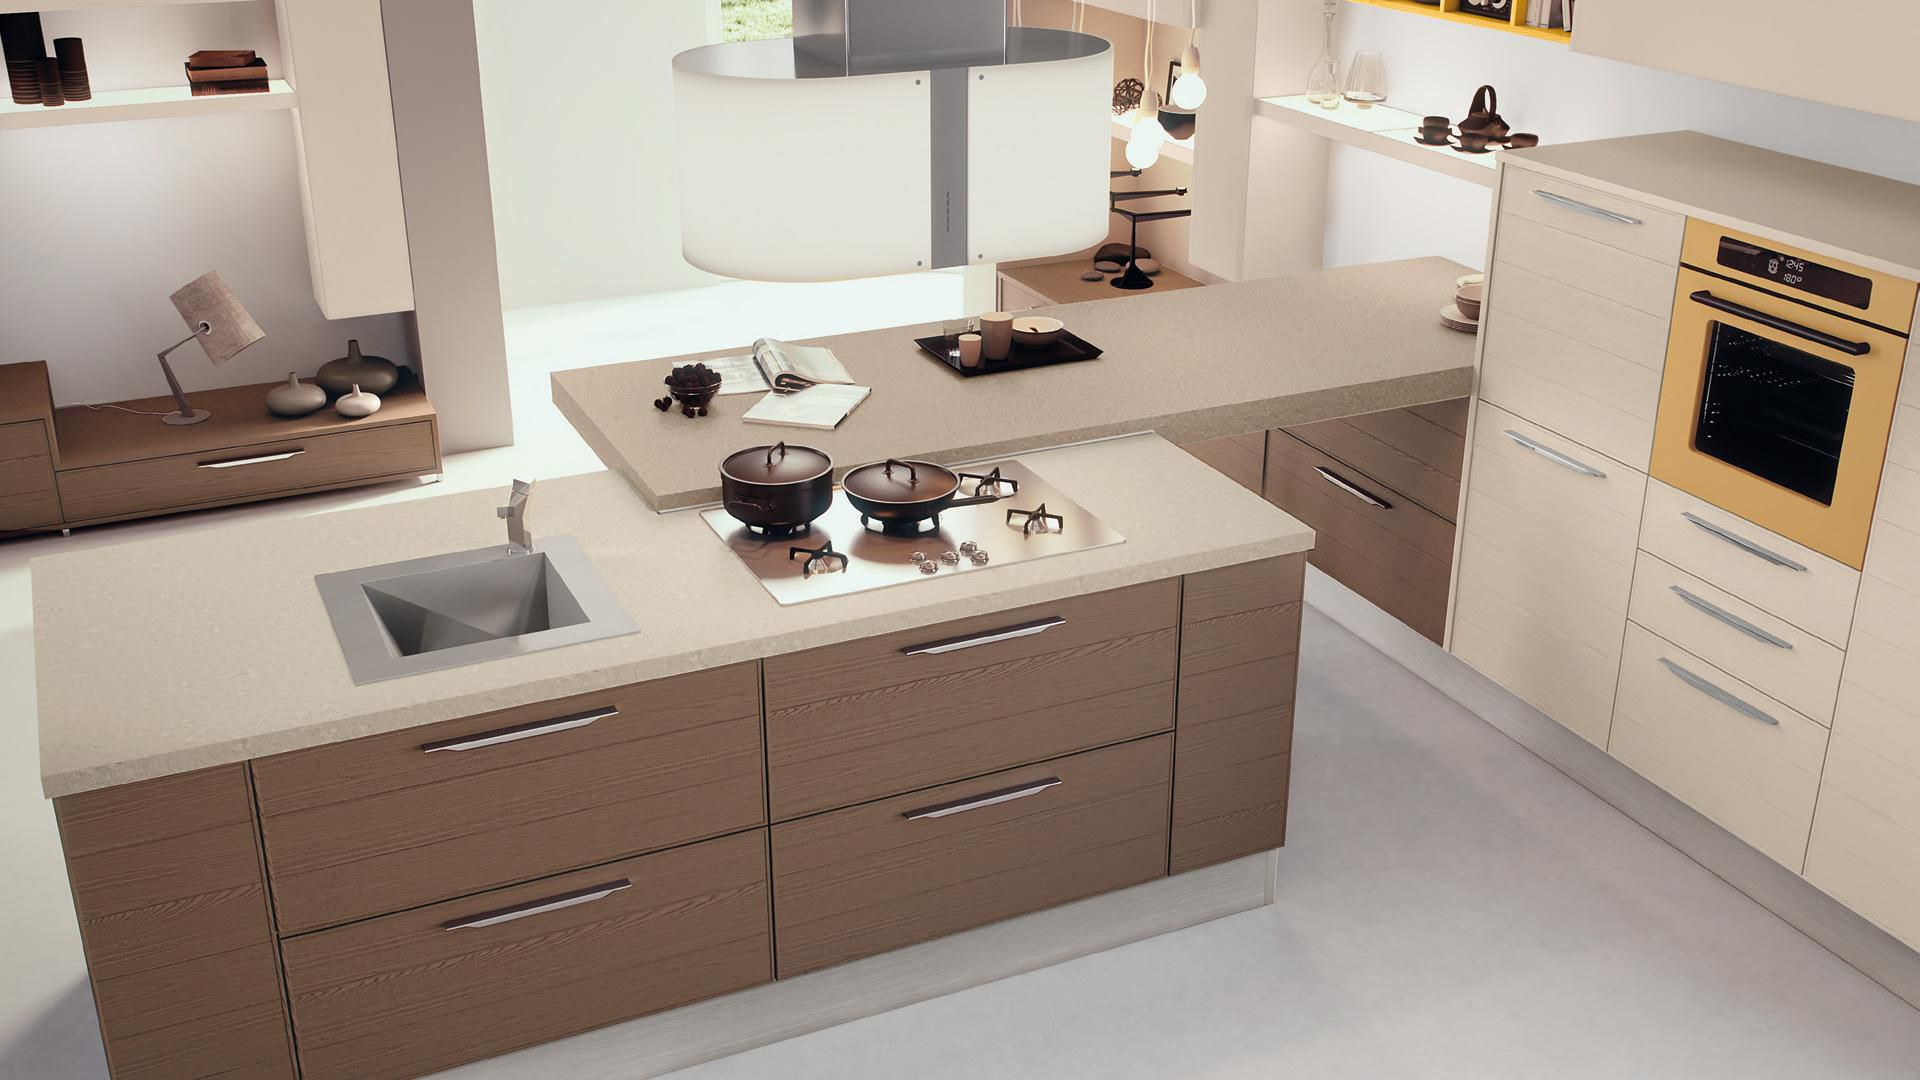 contemporary kitchen / wood veneer / island - adele - cucine lube ... - Cucina Lube Martina